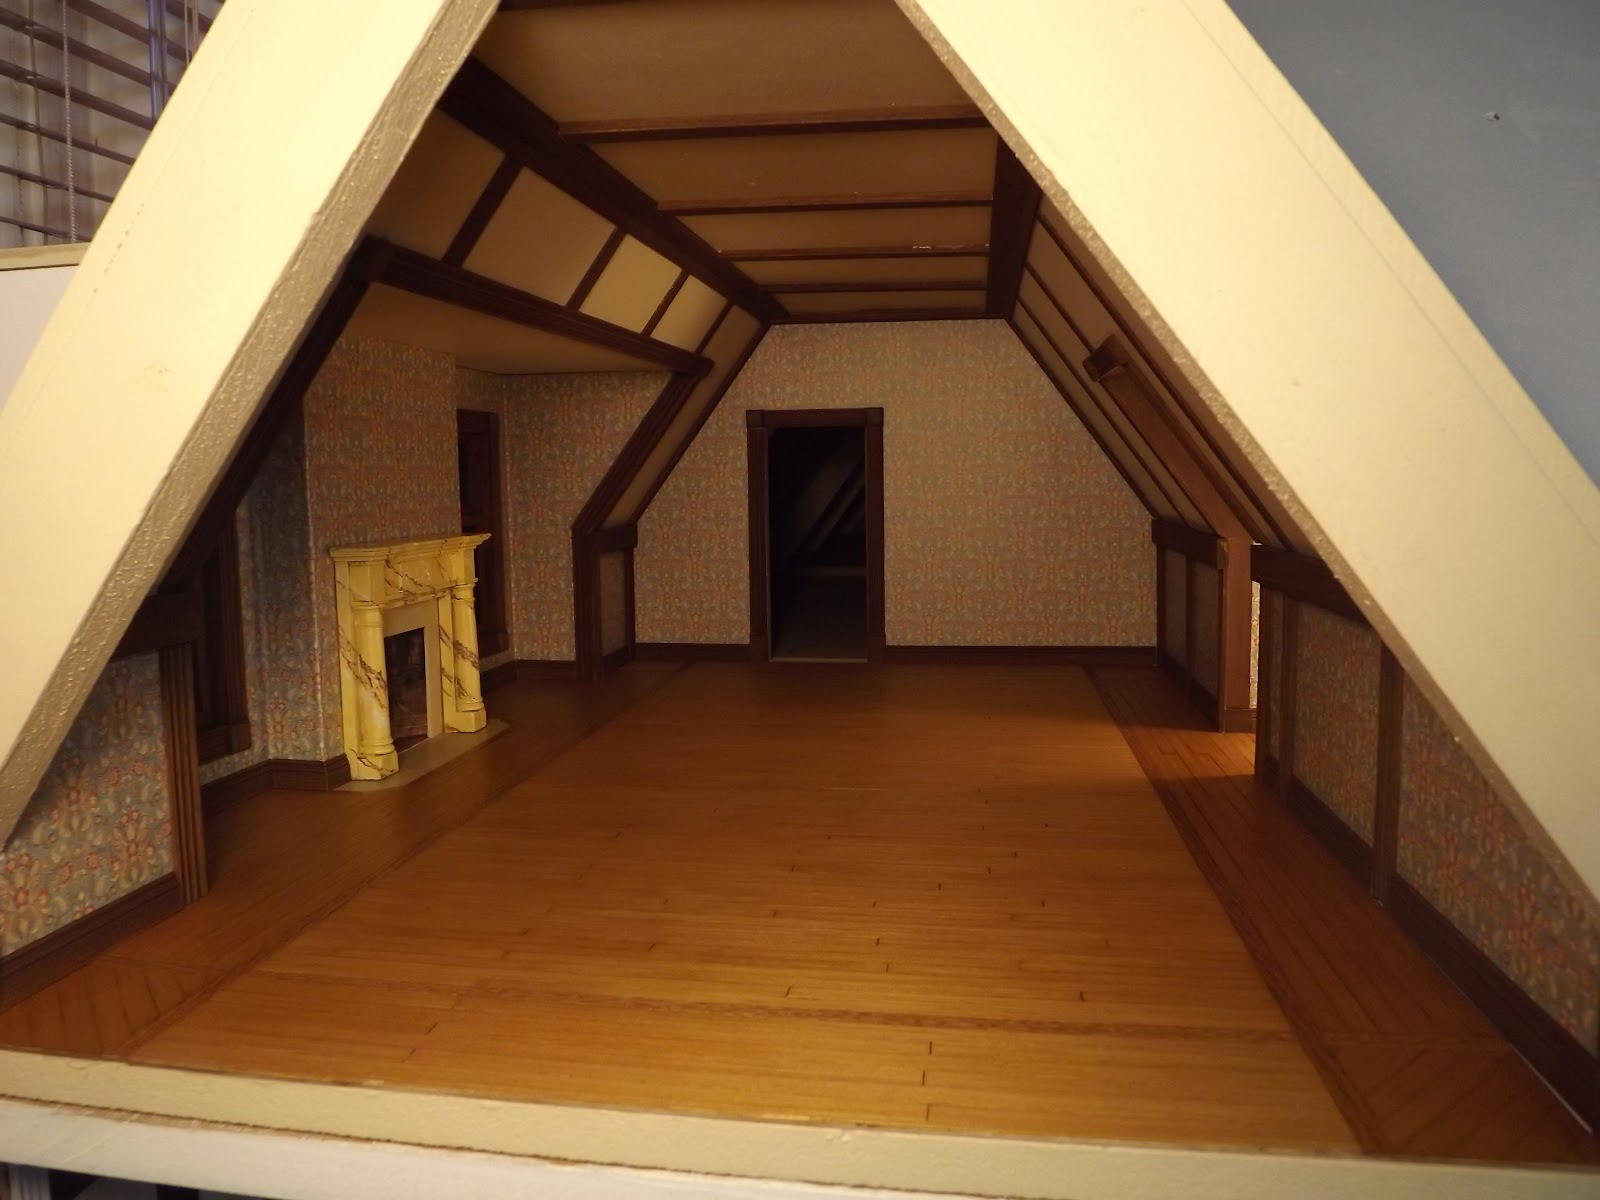 attic bedroom ideas tumblr - Late Victorian English Manor Dollhouse 1 12 Miniature